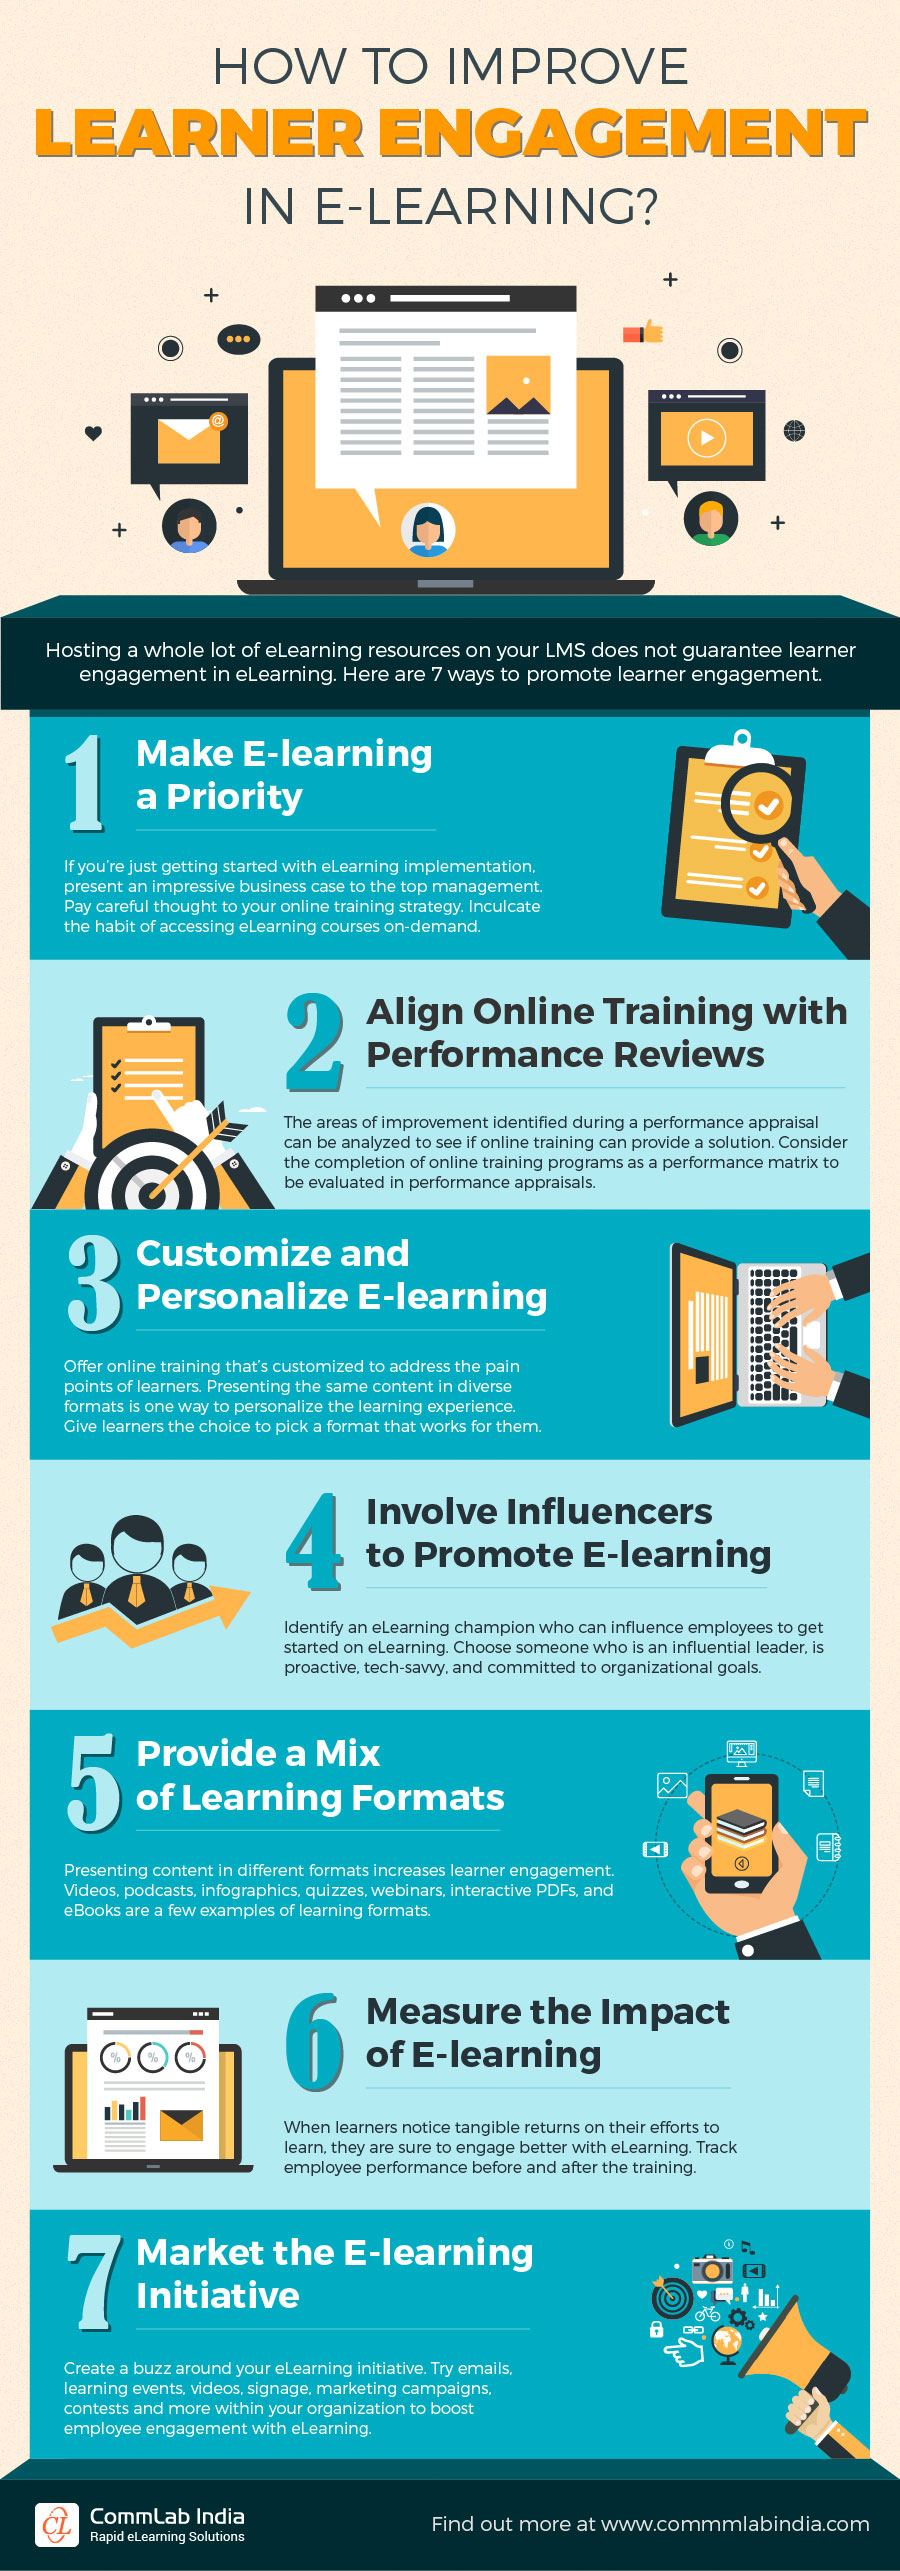 How to Improve Learner Engagement in E-learning? [Infographic]